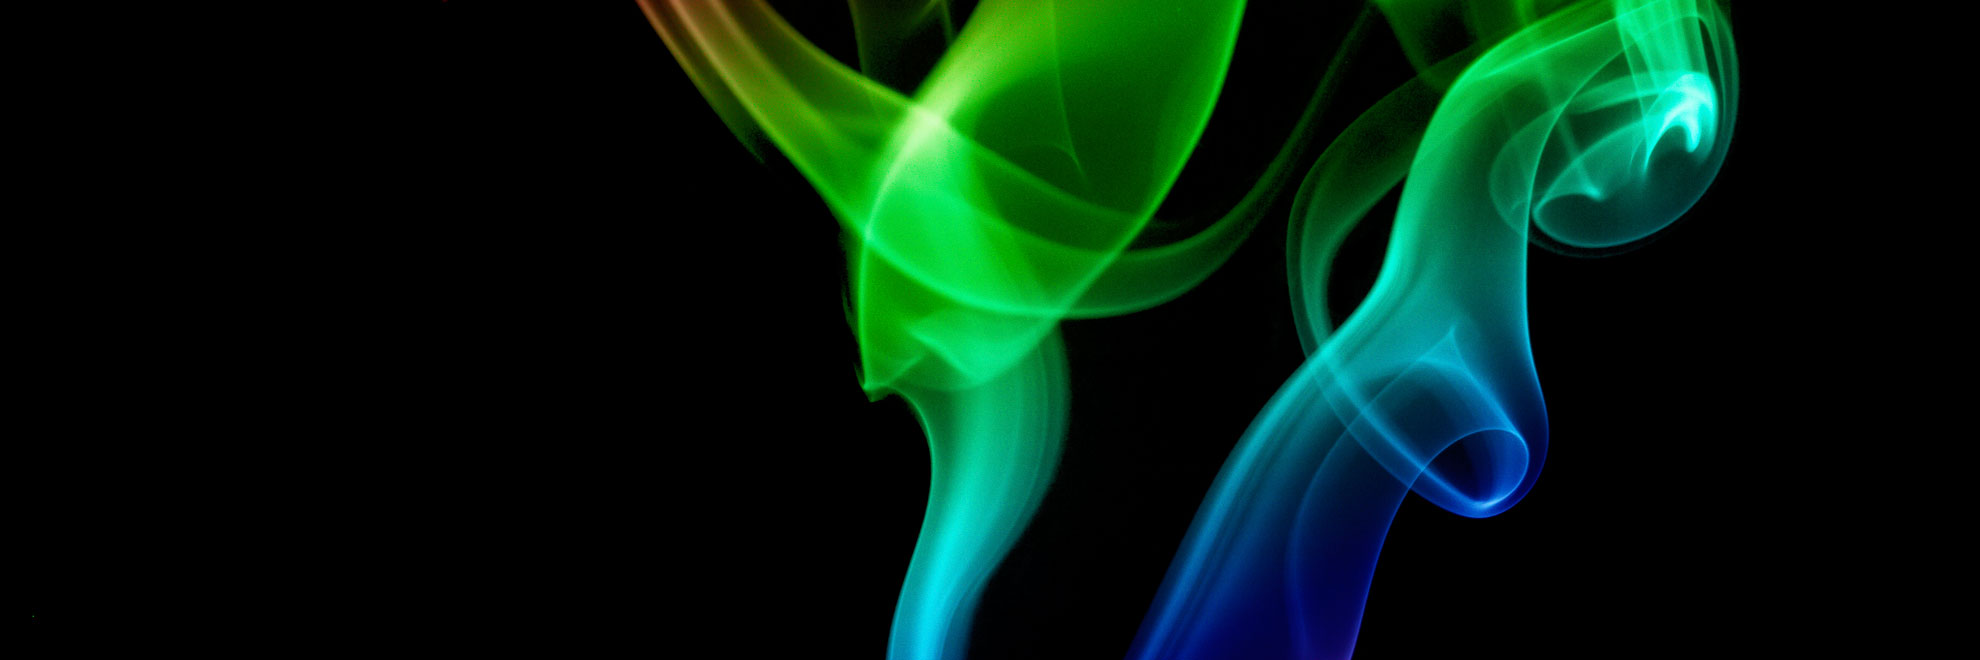 Colorful Smoke